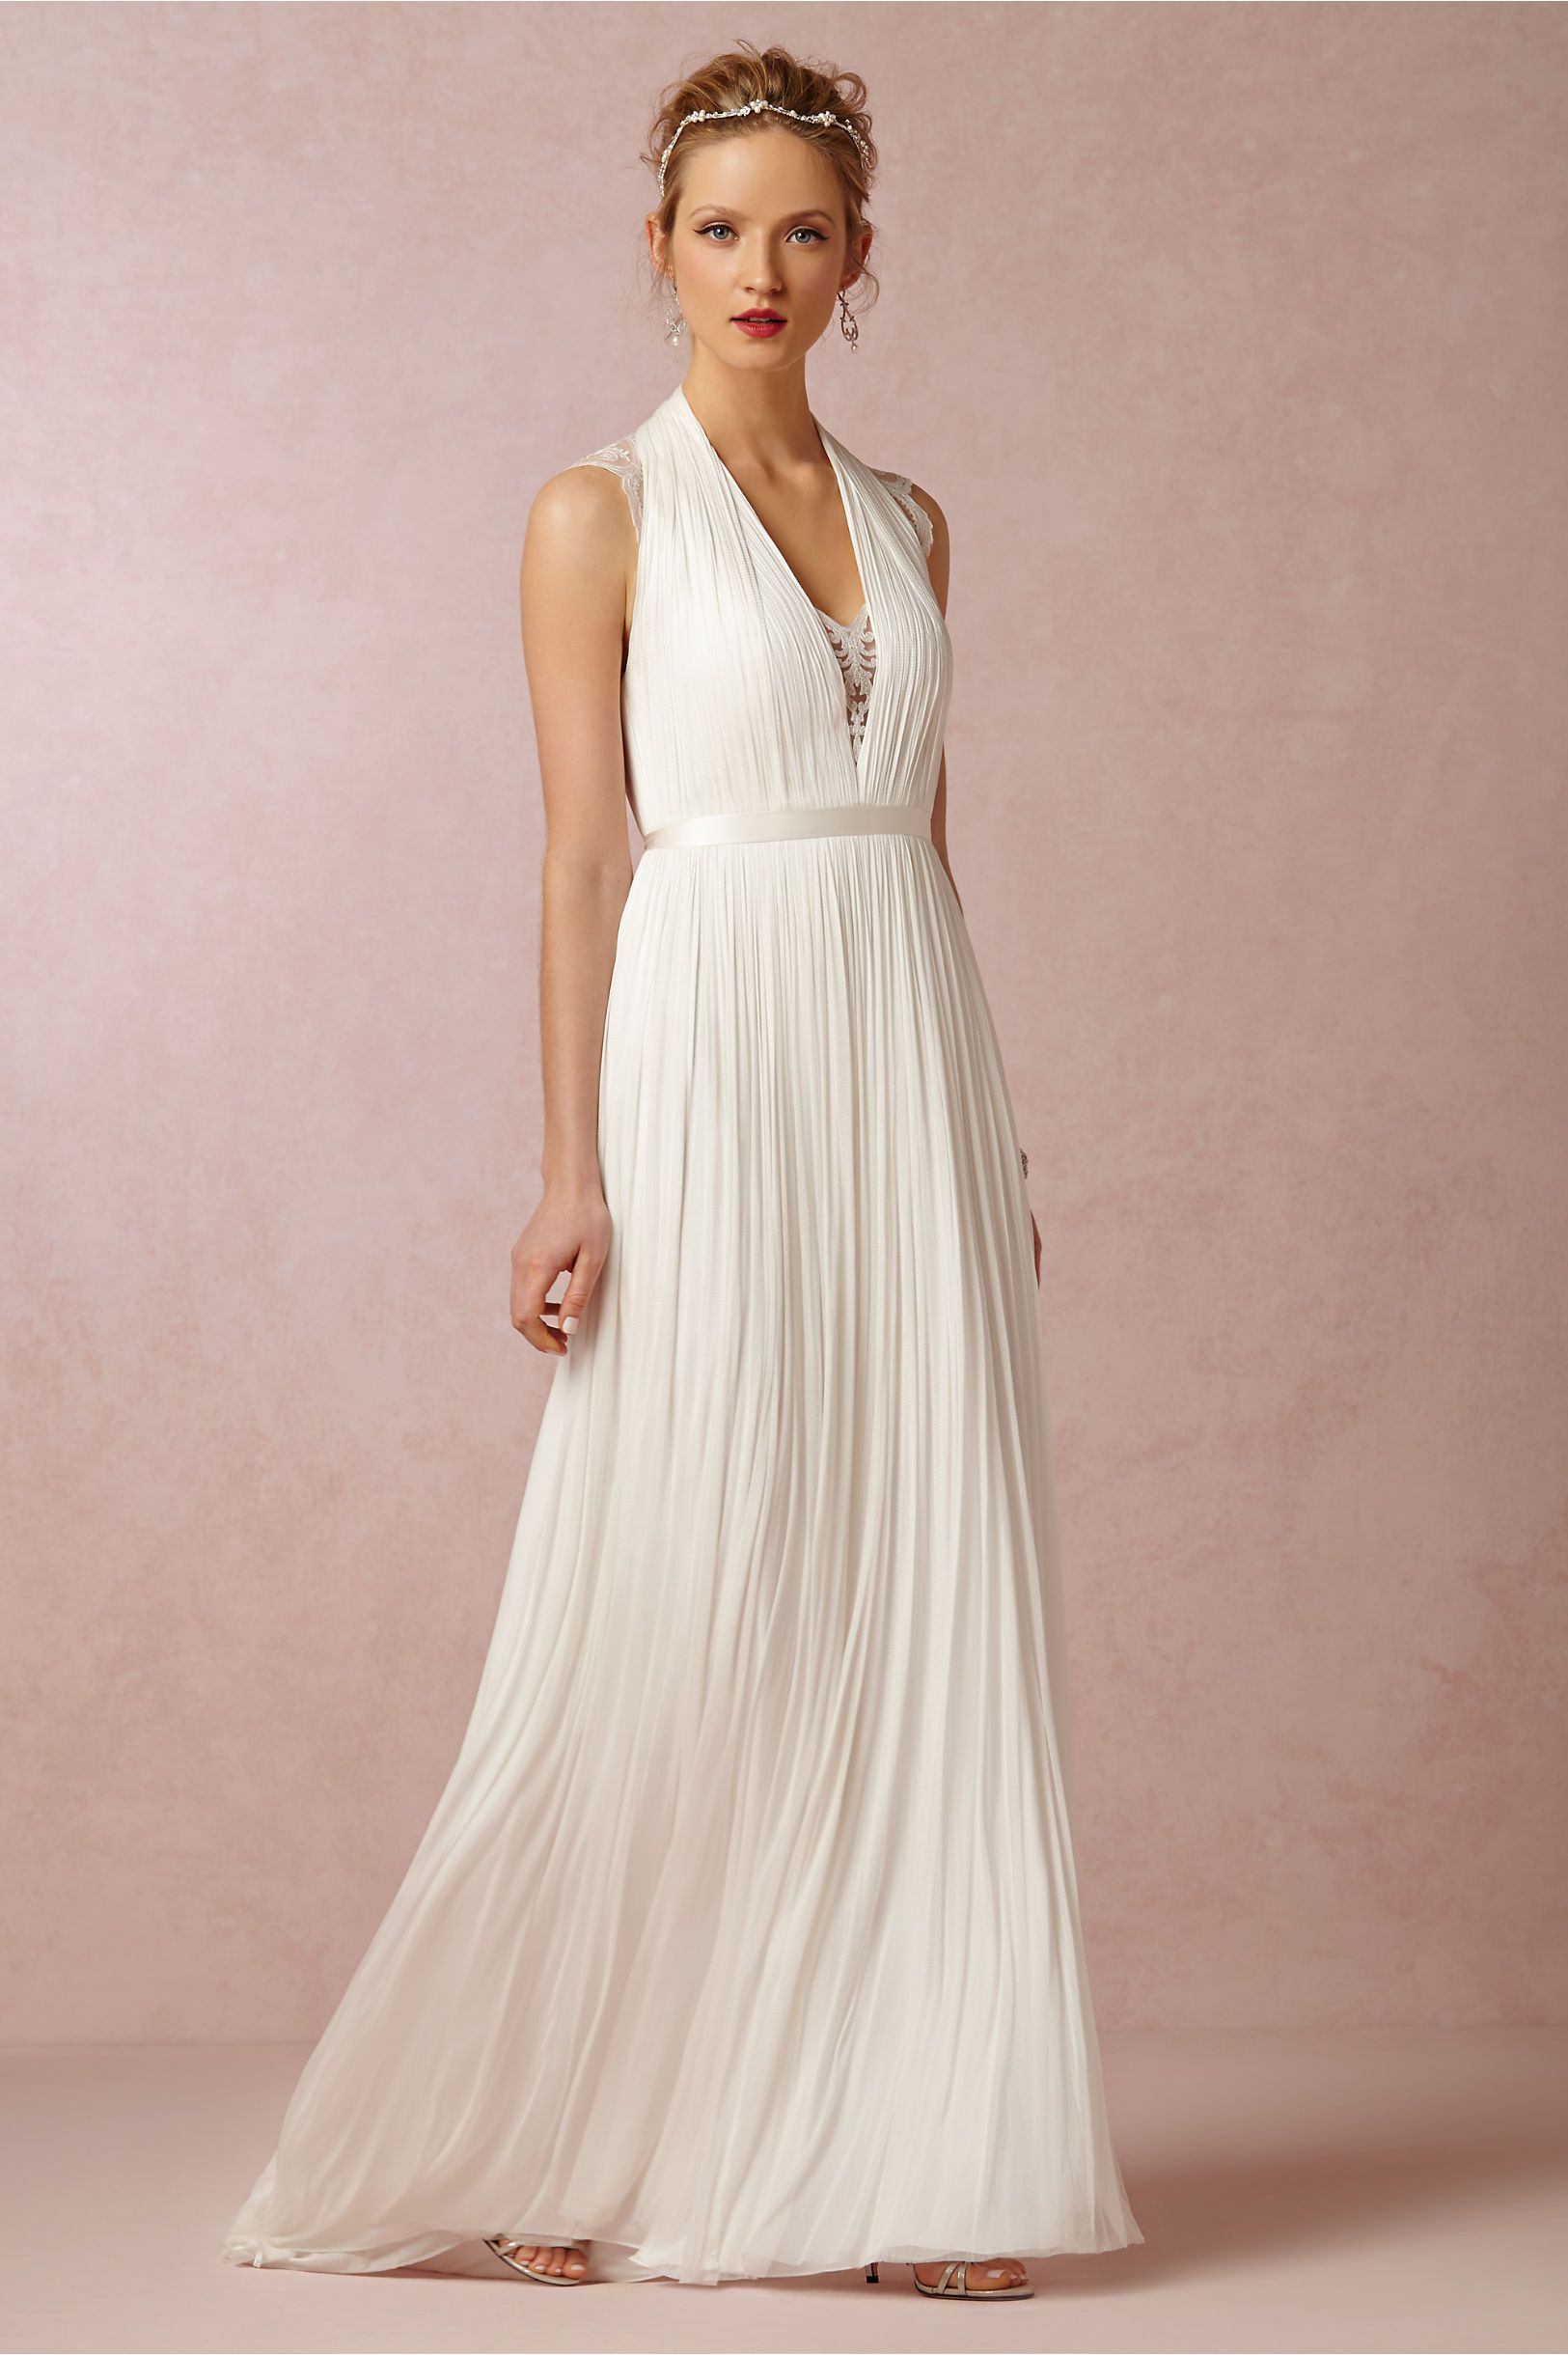 Wing Gown in Bride Wedding Dresses at BHLDN | Wedding dresses ...